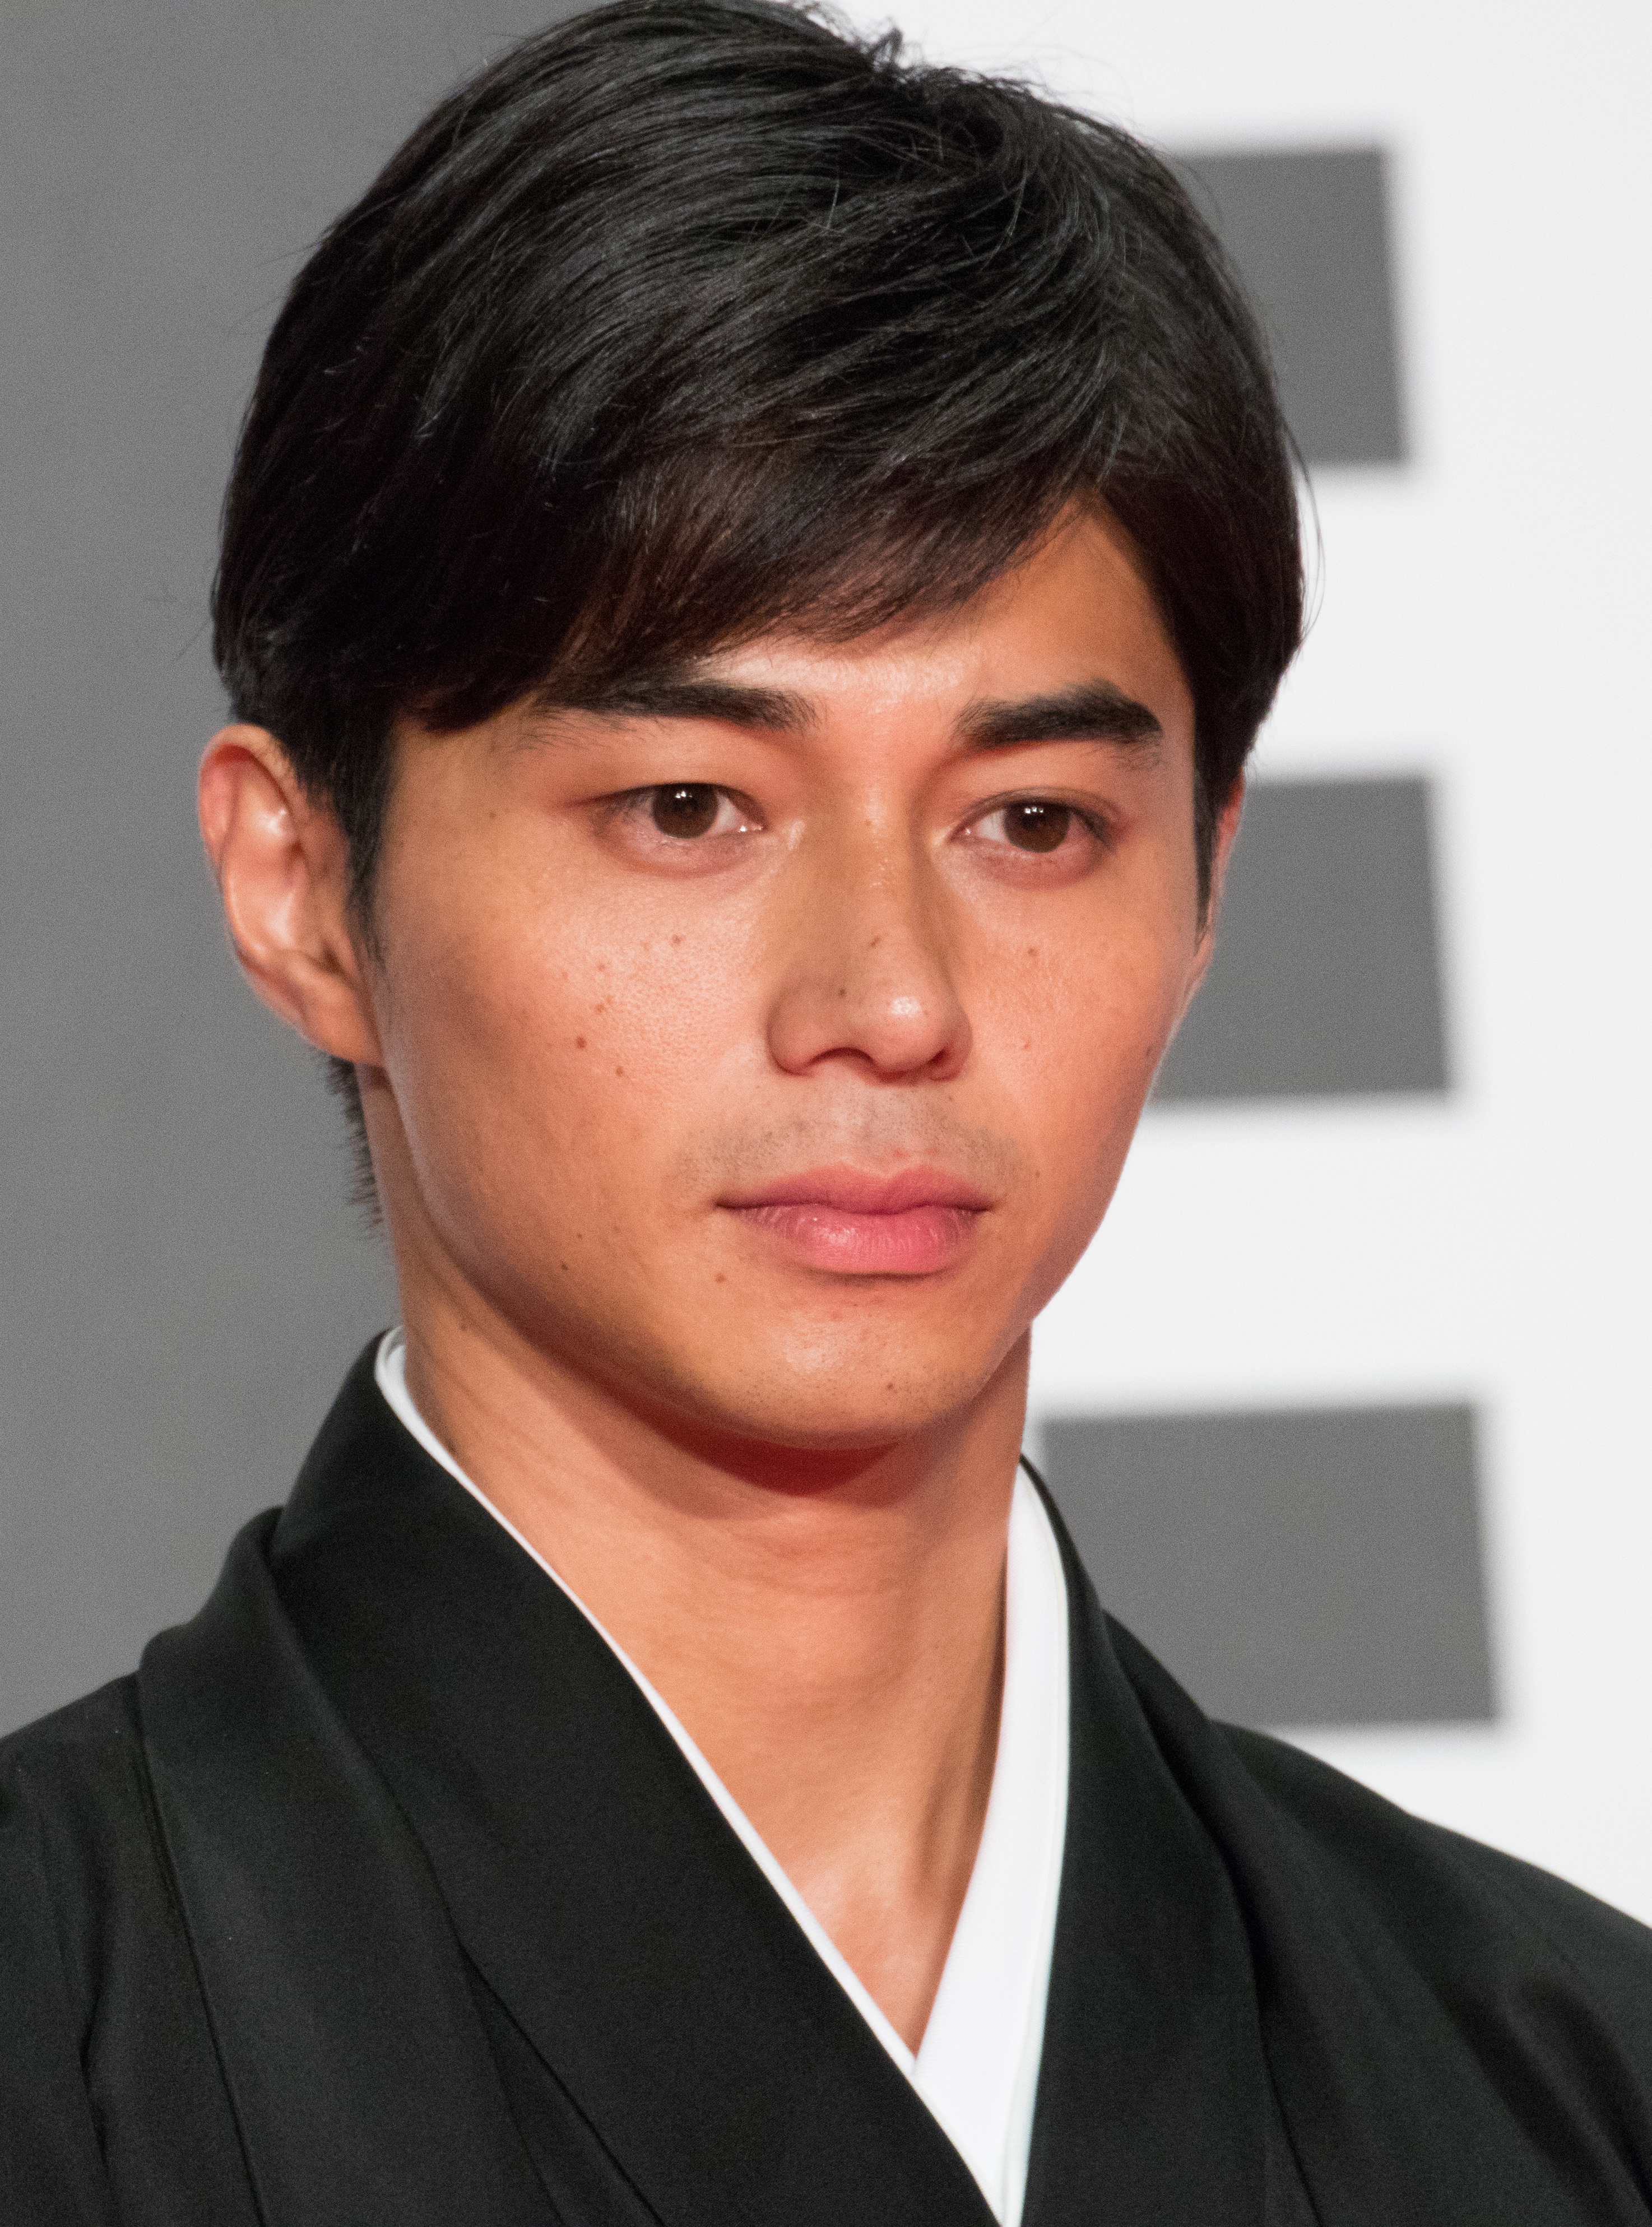 """Higashide Masahiro from """"Satoshi- A Move for Tomorrow"""" at Opening Ceremony of the Tokyo International Film Festival 2016 (32802148544) (cropped)"""